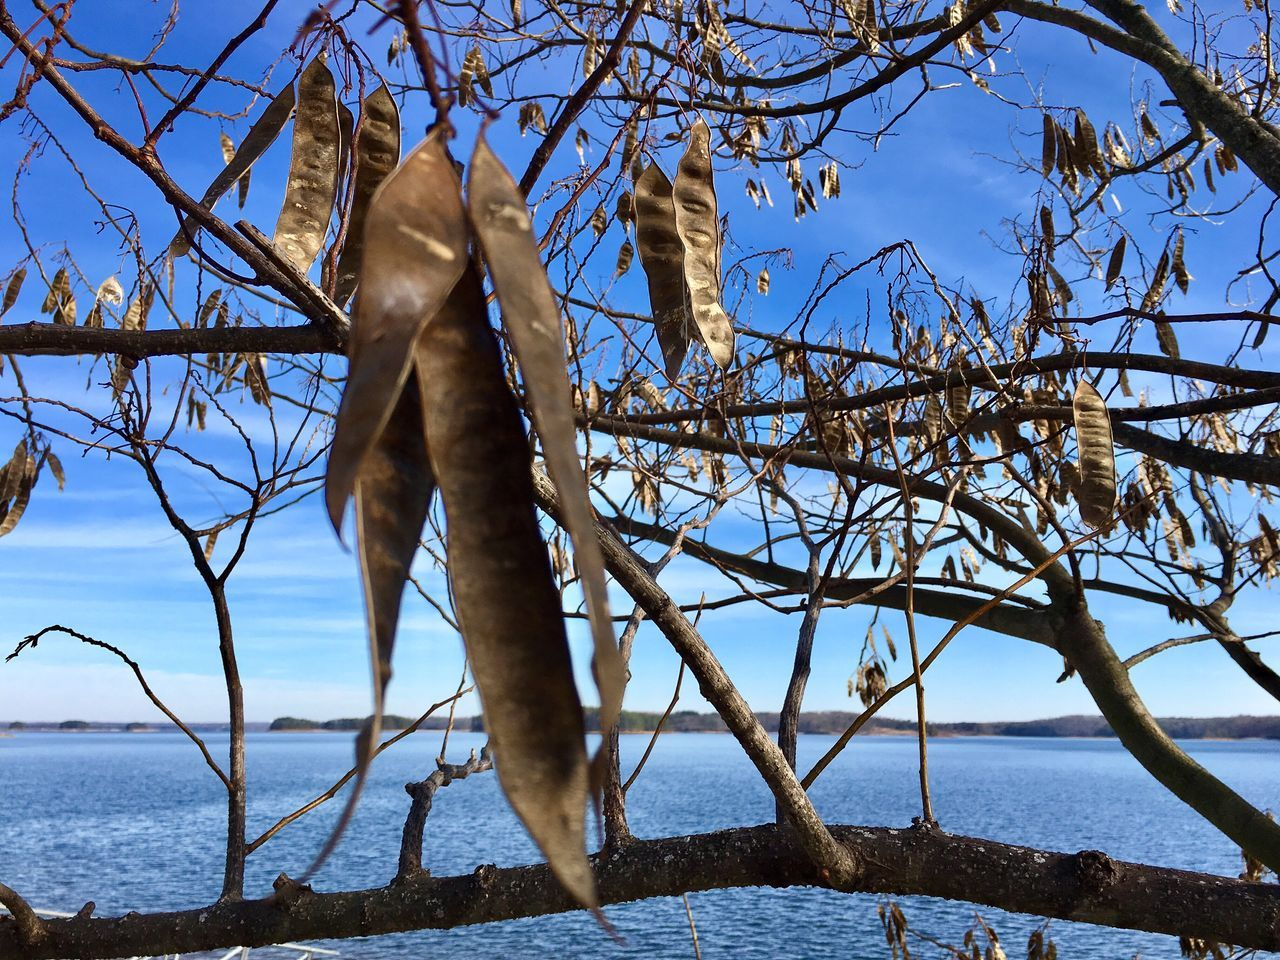 Winter at Lake Lanier Nature Tree Branch Bare Tree Beauty In Nature No People Outdoors Tranquility Day Sky Scenics Water Lake Composition Perspective Blue Color Layers And Textures Layers Blue Sky Seeds Cold Weather Winter